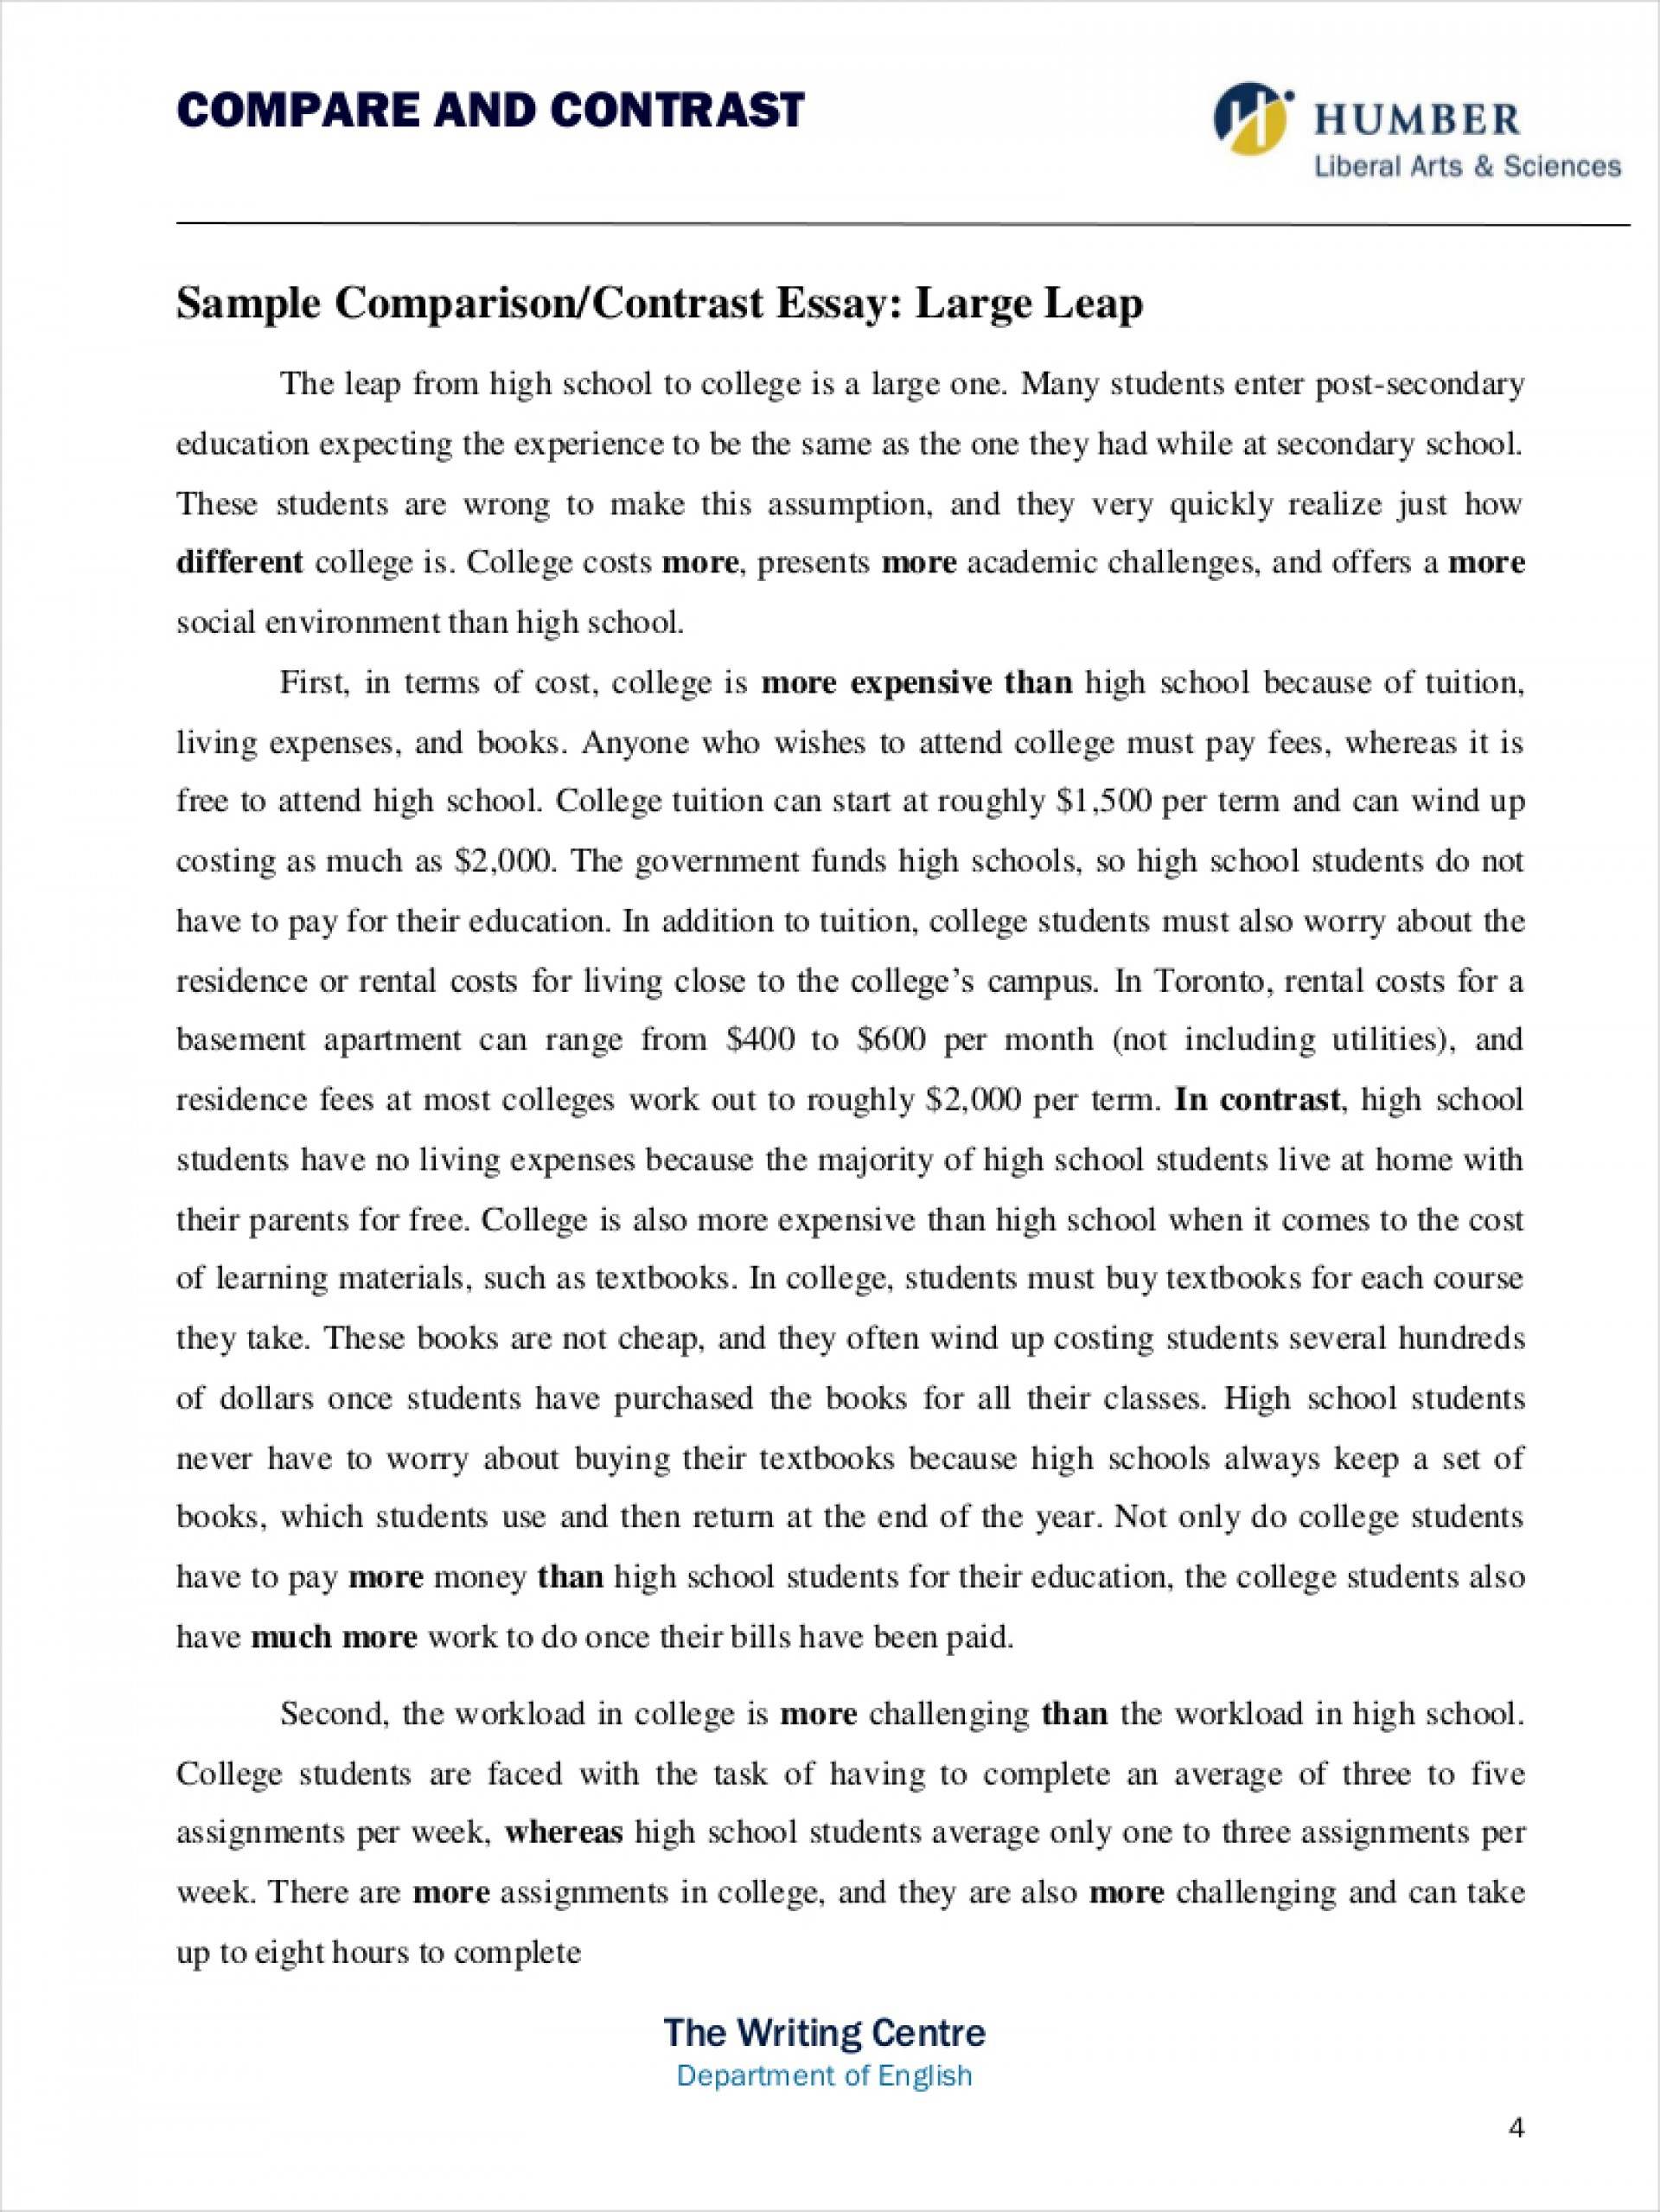 001 Free Essays For School Students Essay Example Comparative Samples Pdf Format Download Throughout Compare Contrast Examples Comparison Thesis Coles Thecolossus Co Within Ex 5th Grade Striking Scholarships High Writing Prompts 1920